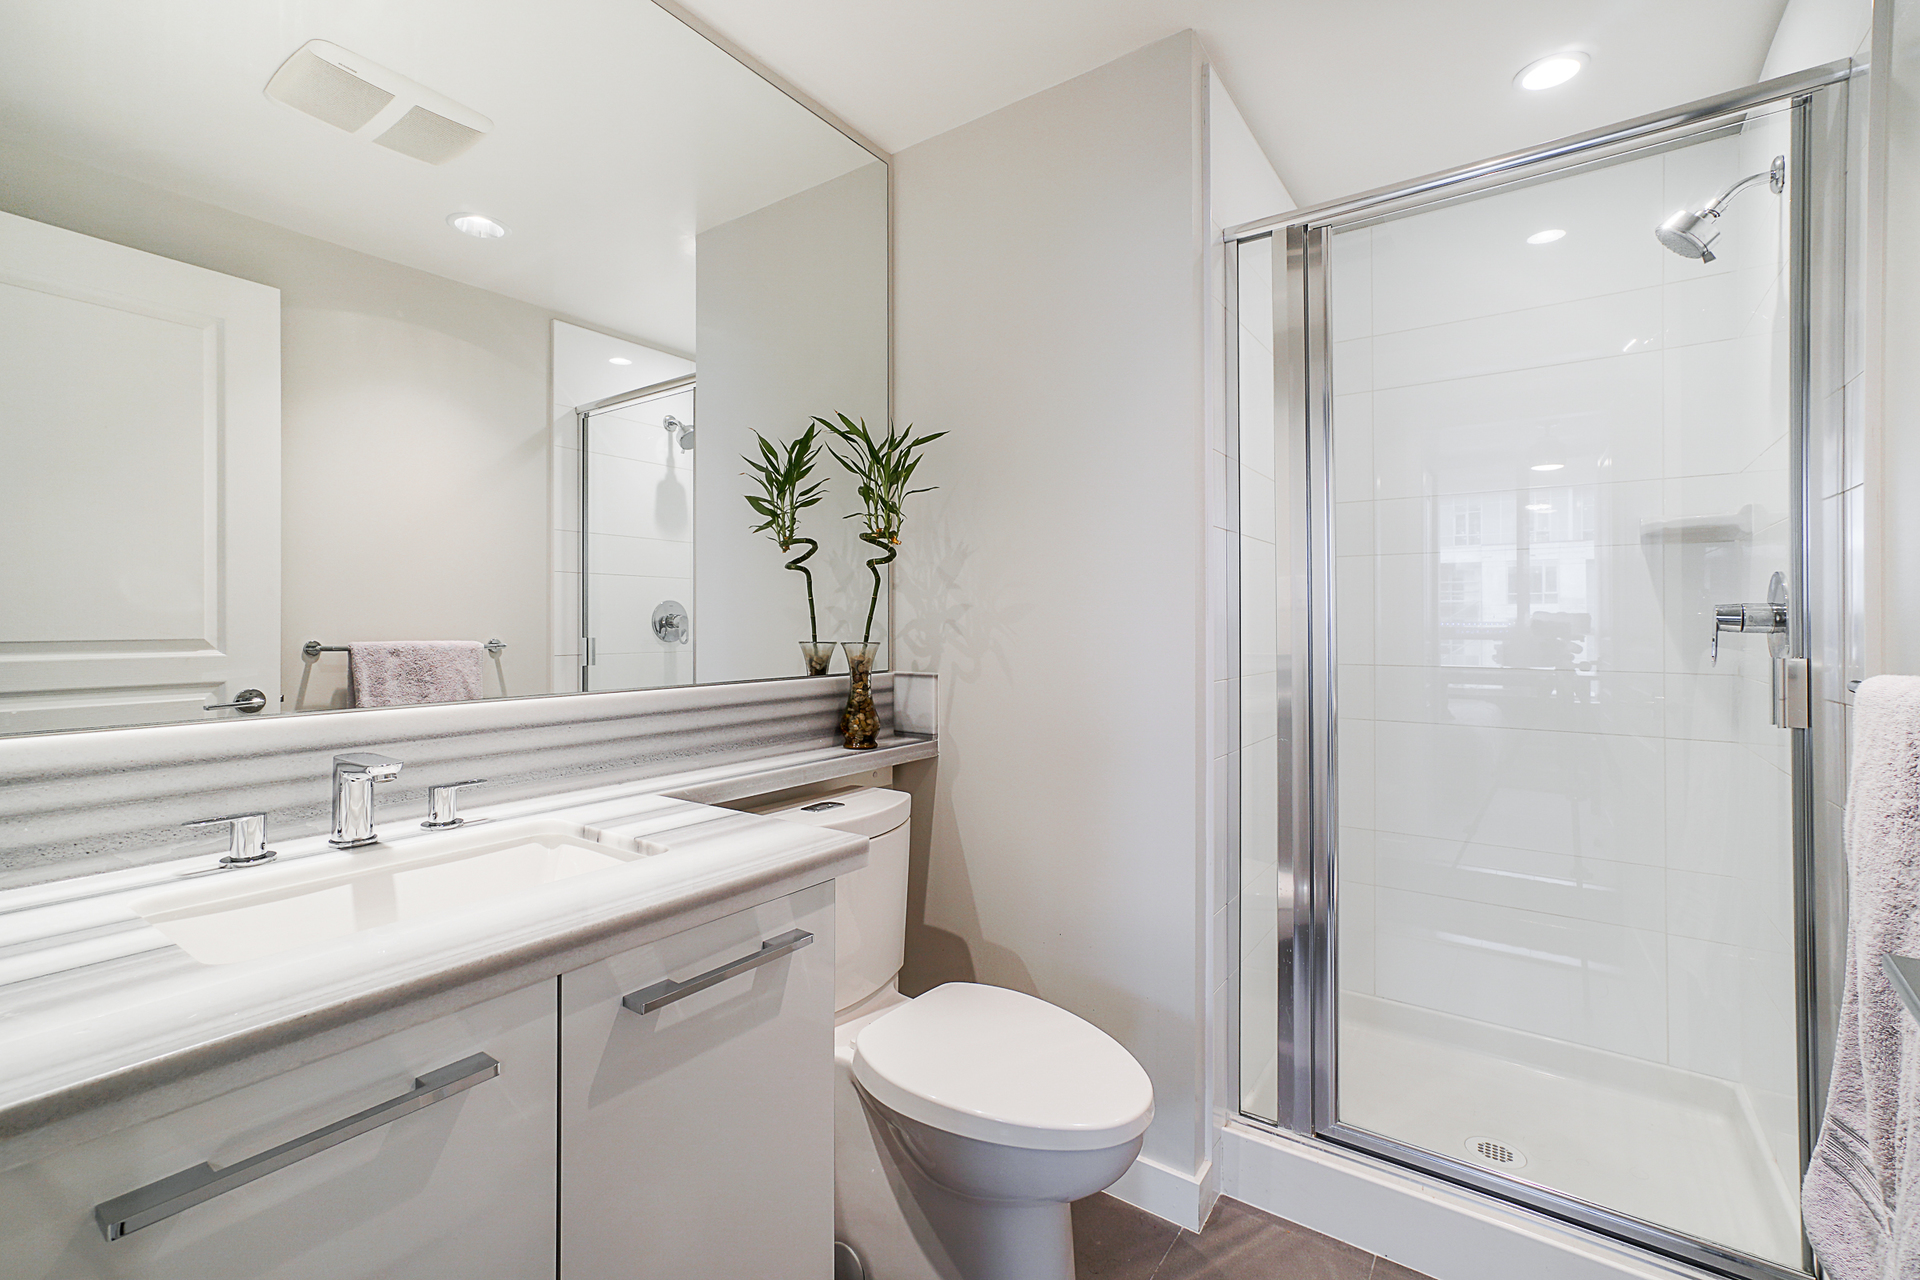 unit-2705-3093-windsor-gate-coquitlam-22 at 2705 - 3093 Windsor Gate, New Horizons, Coquitlam